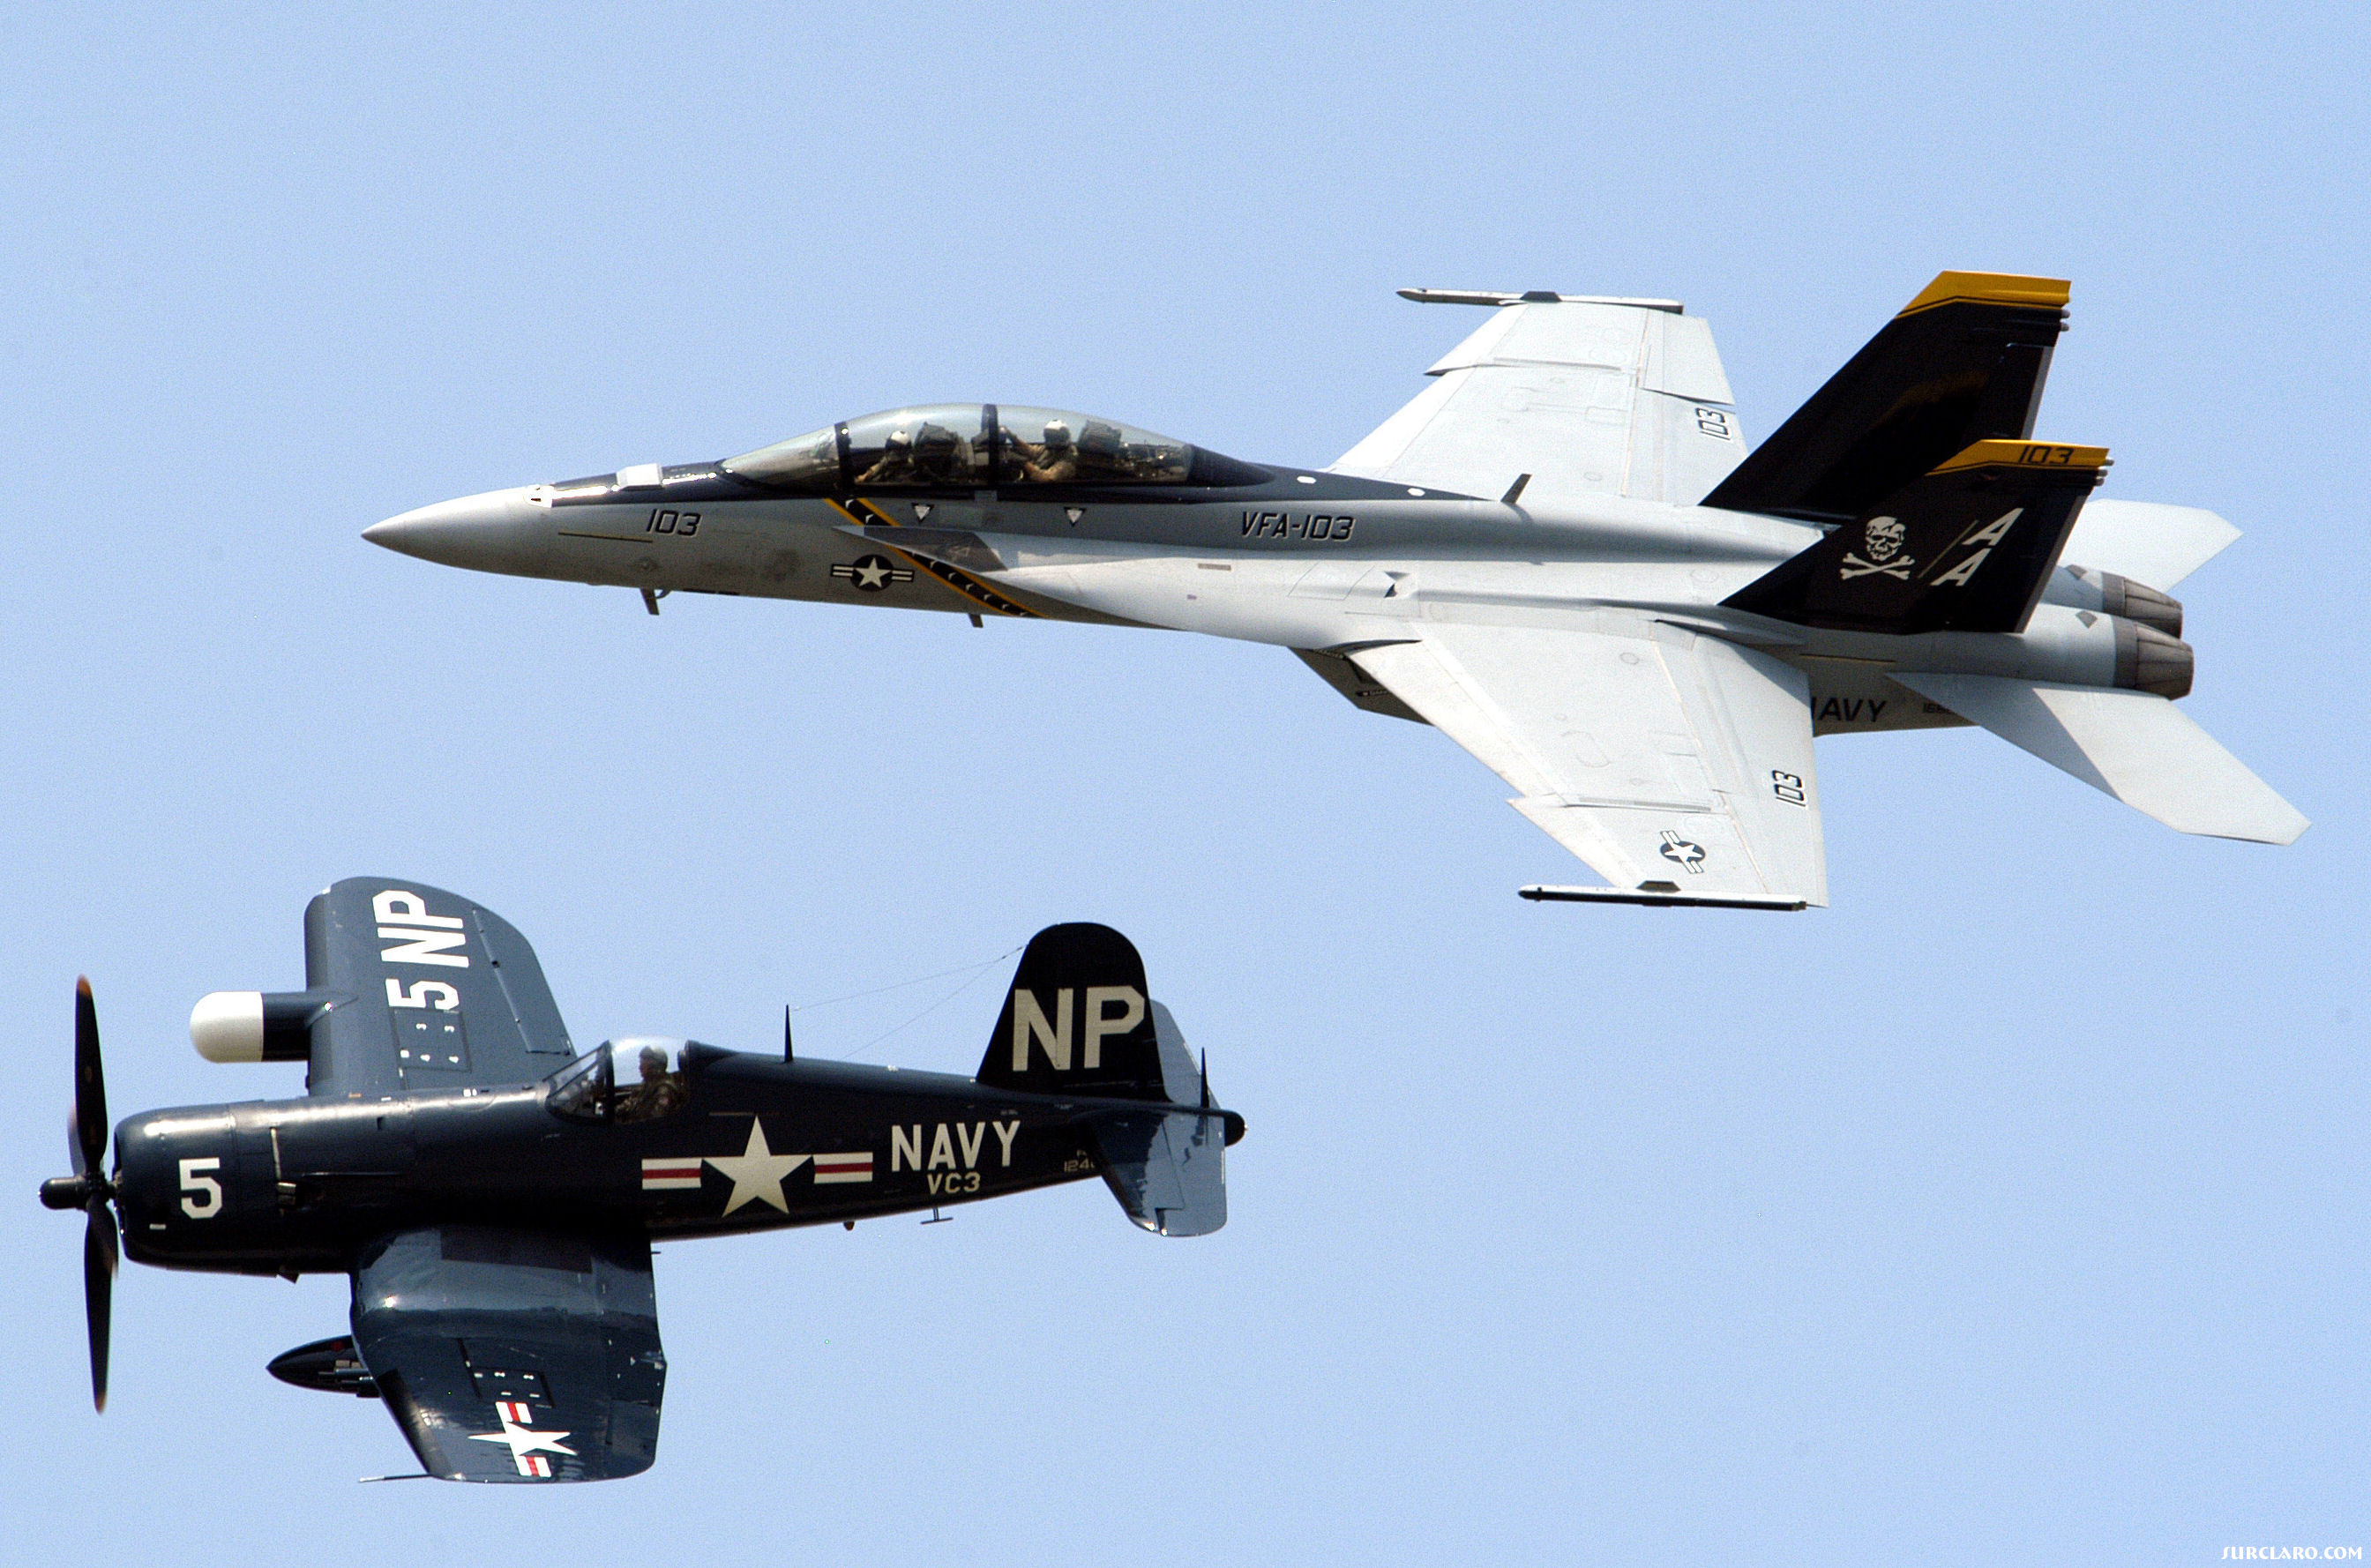 NAS Oceana airshow.  F4U Corsair/F/A-18 Superhornet of VFA-103 Jolly Rogers in formation. - Photo 18004